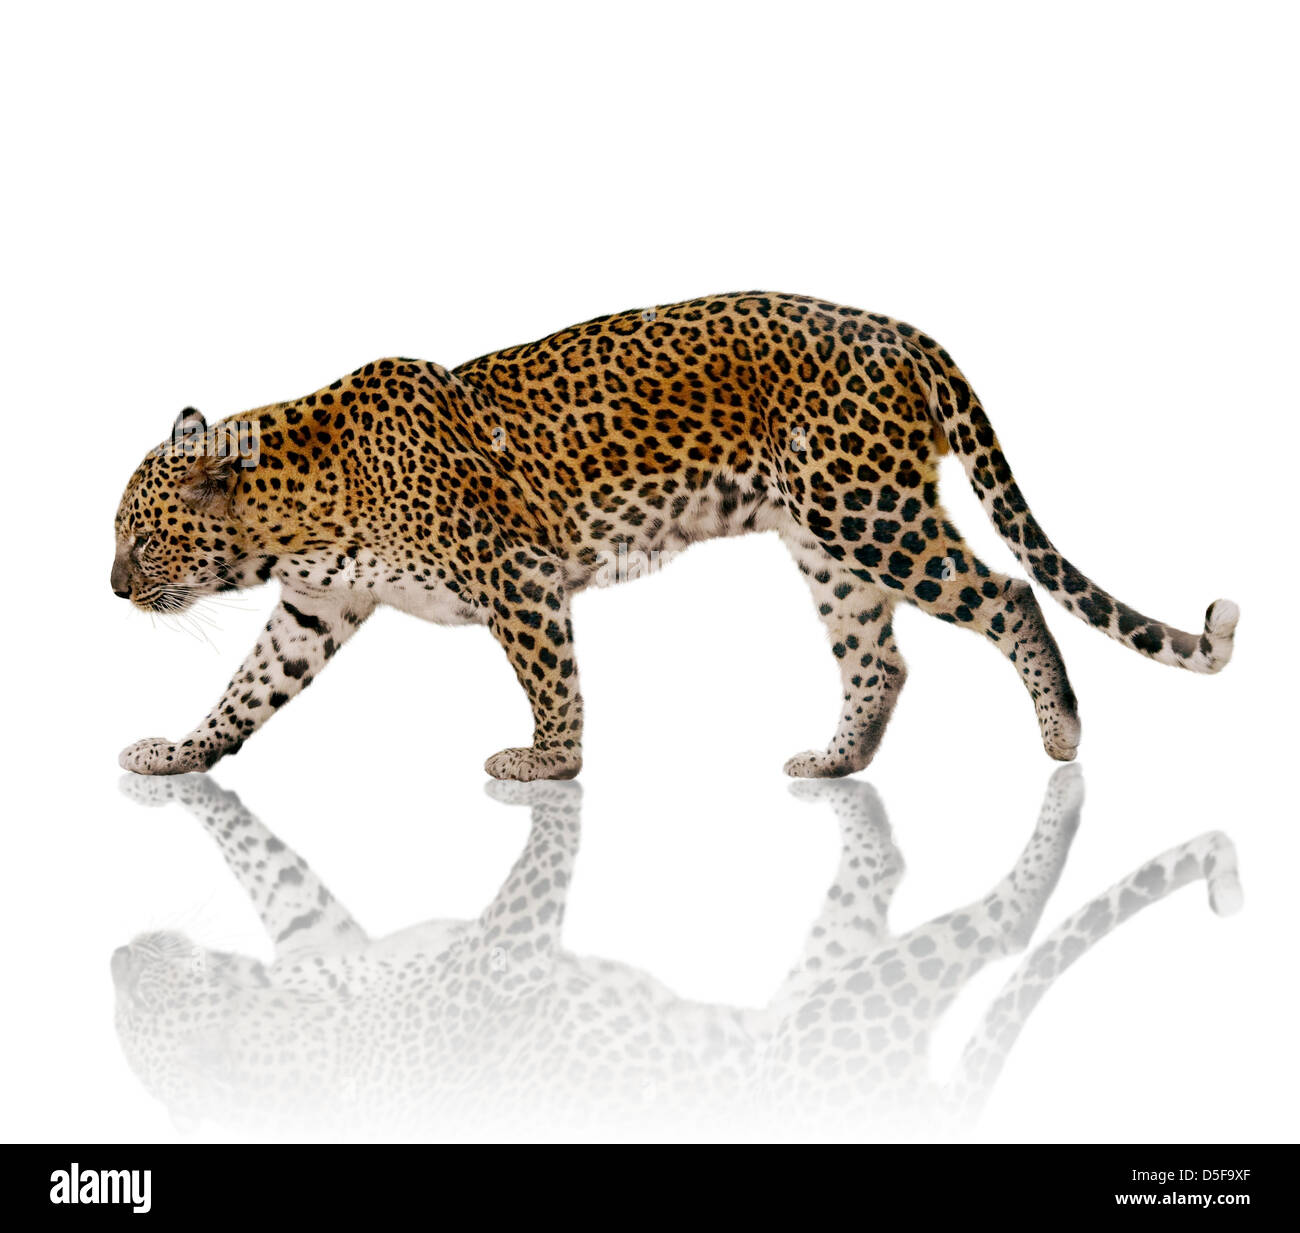 A Male Leopard Against A White Background - Stock Image